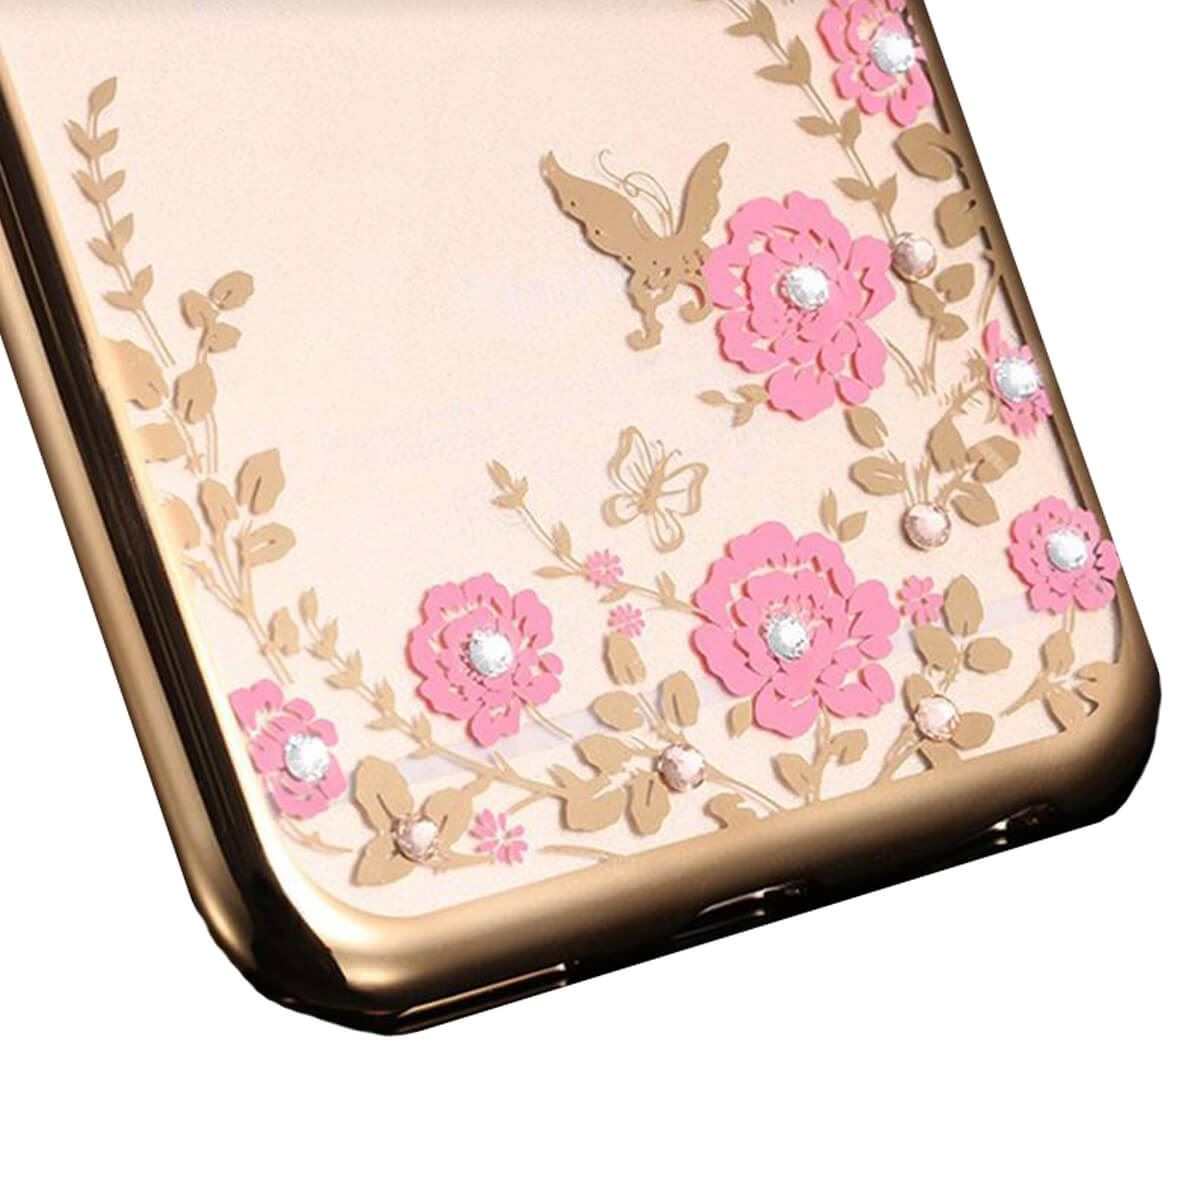 Soft-Gel-Case-For-iPhone-X-8-7-6-5s-5-Flower-Bling-Glitter-Diamond-Sparkly-Cover thumbnail 4